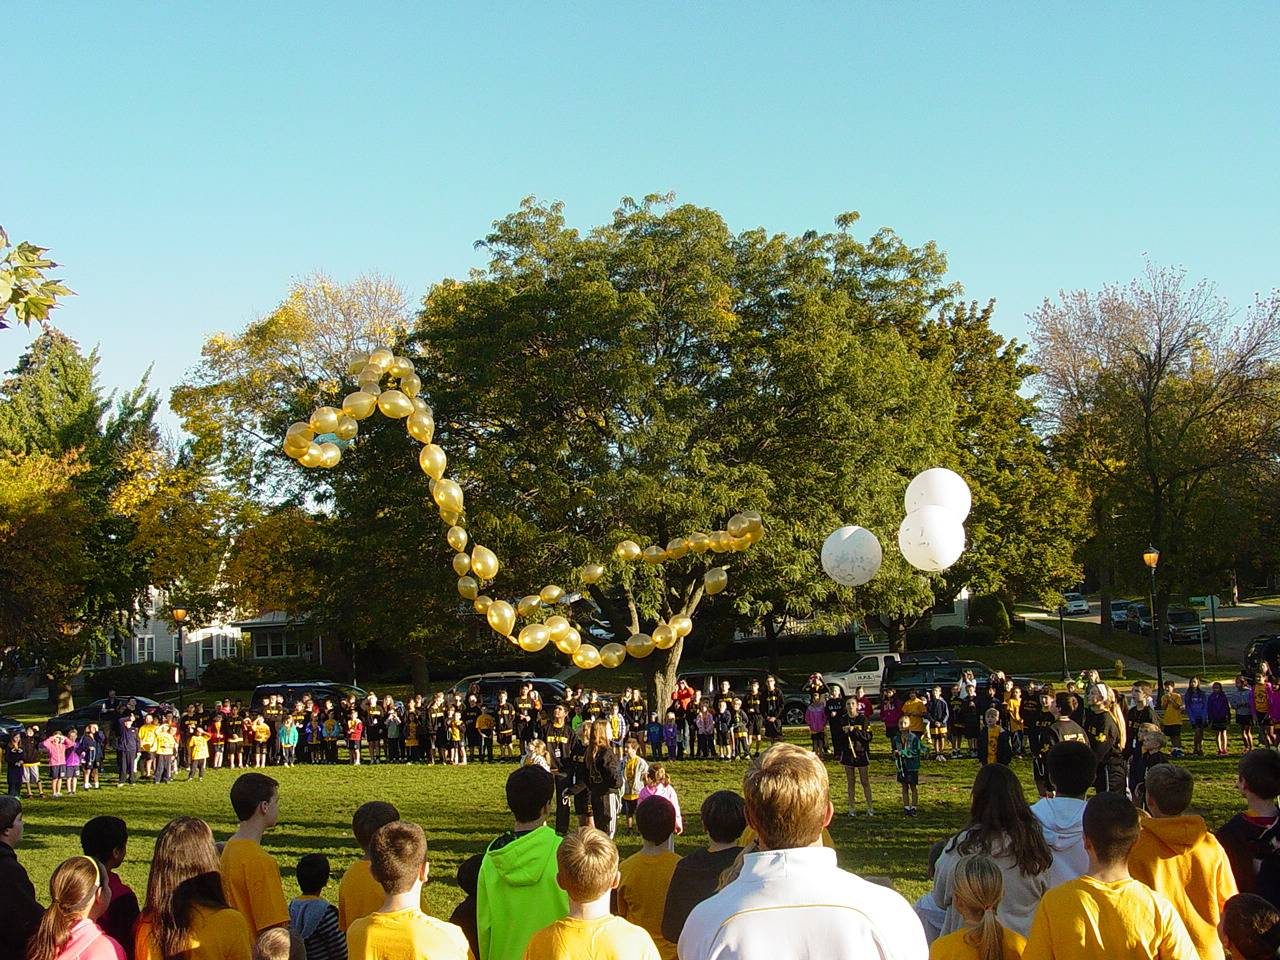 The Saint Joseph Catholic school family watches as the balloon rosary floats into the sky.